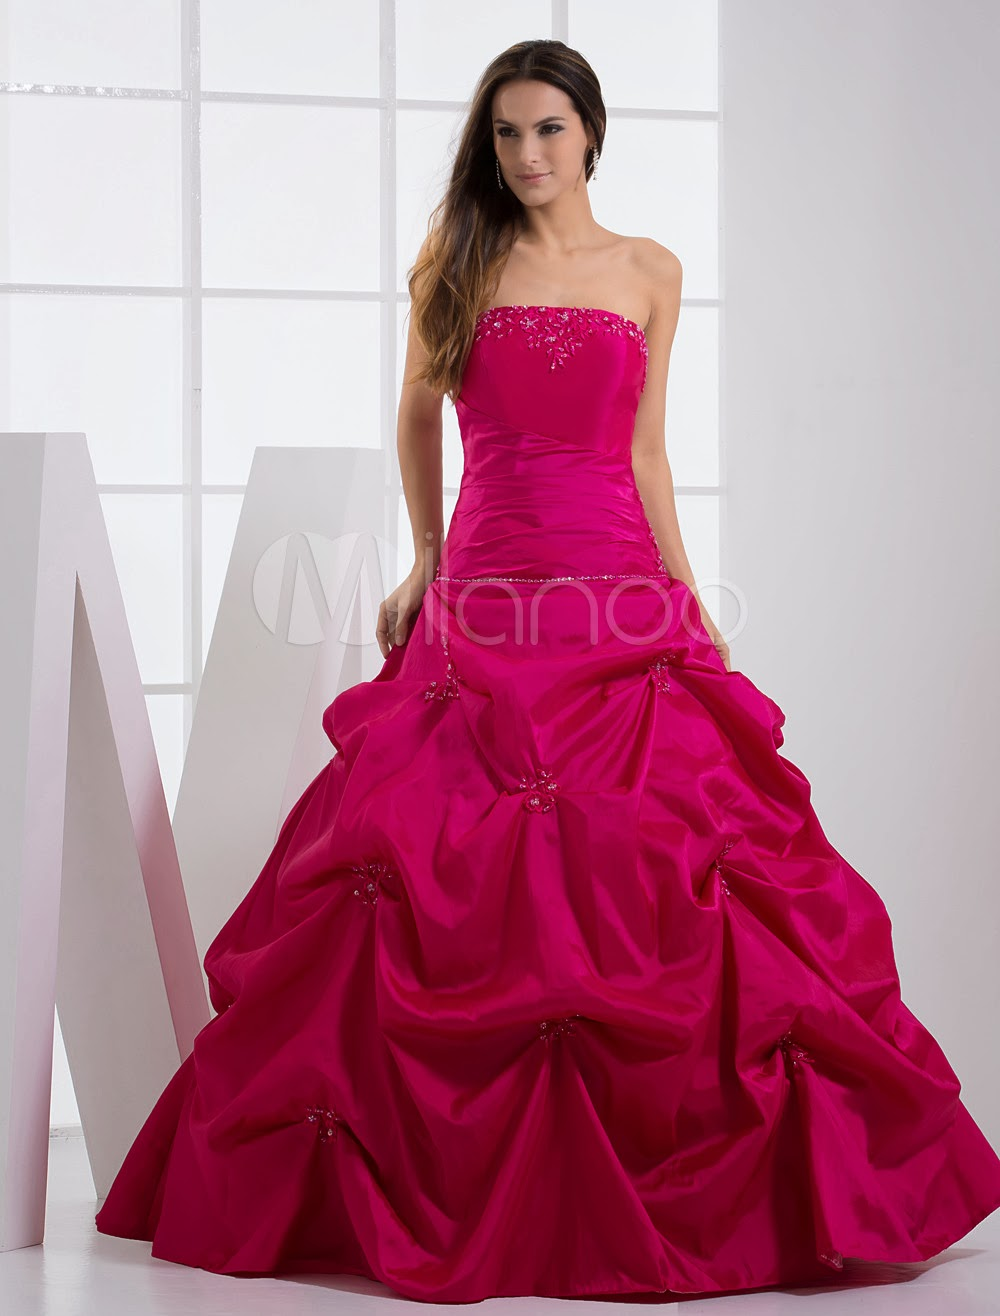 China Wholesale Dresses - Strapless Applique Beading Taffeta Ball Gown Dress